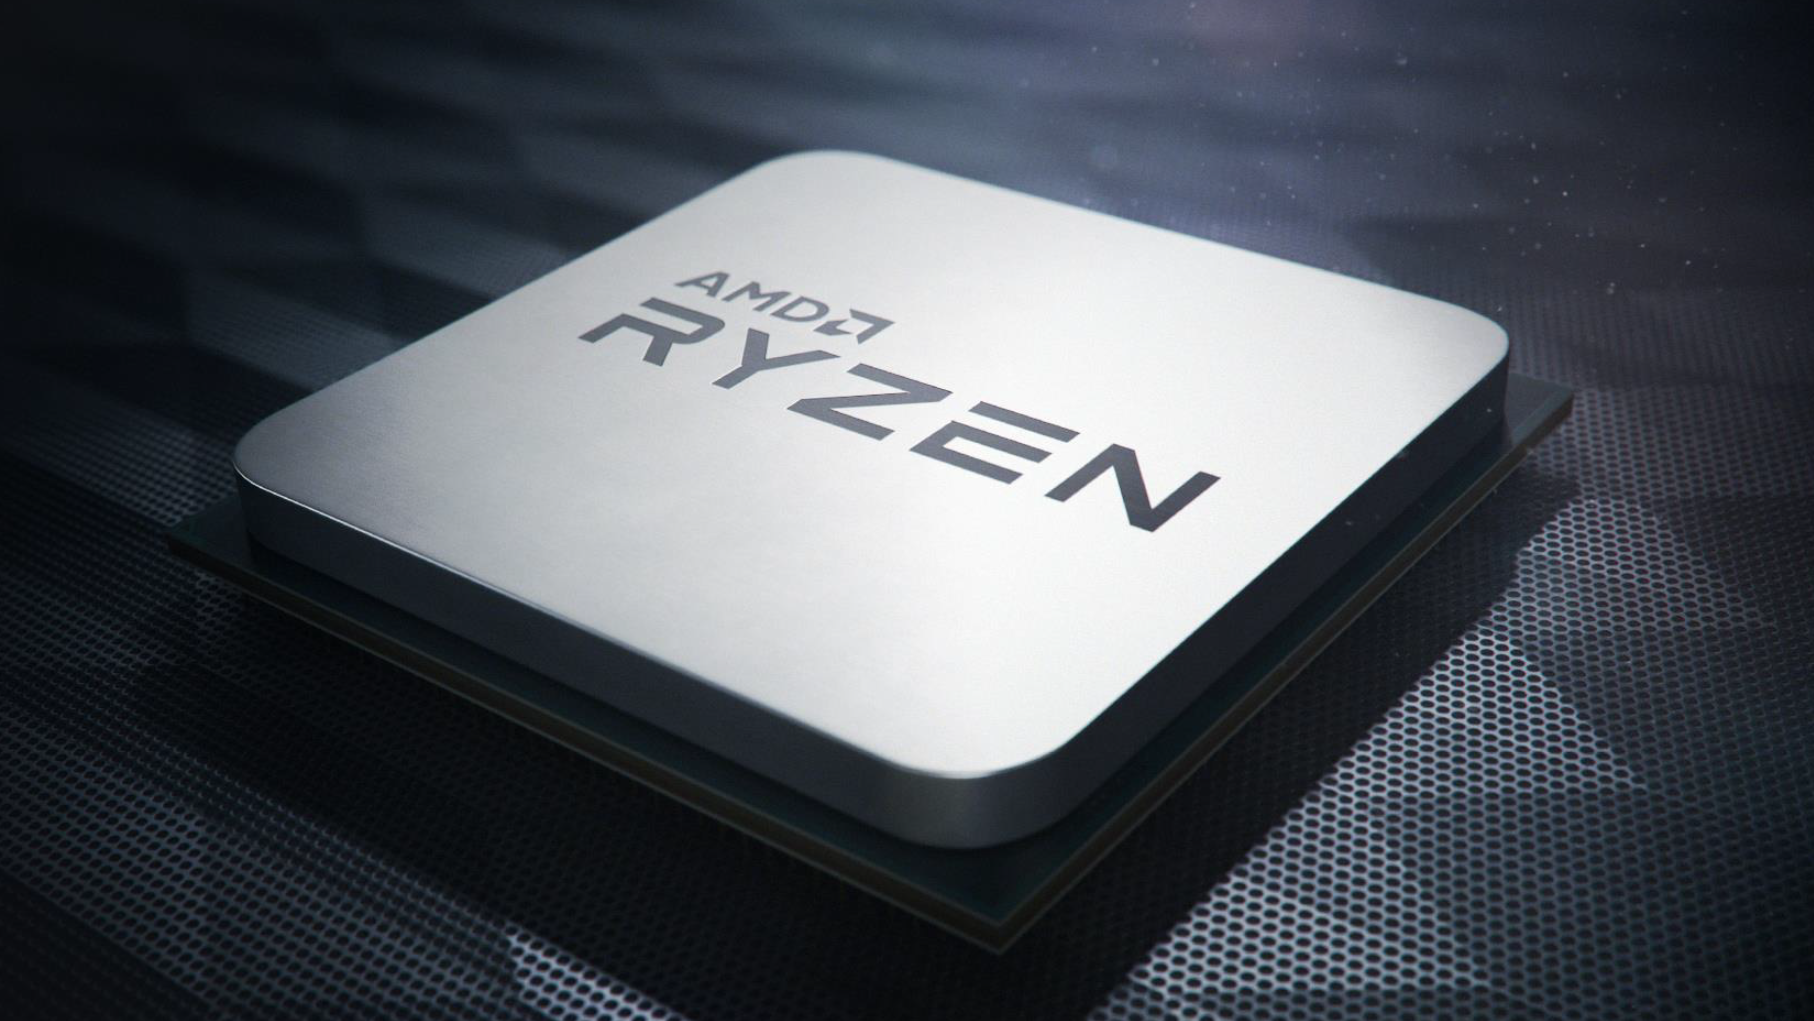 AMD Ryzen 3000 release date, specs and price all unveiled at